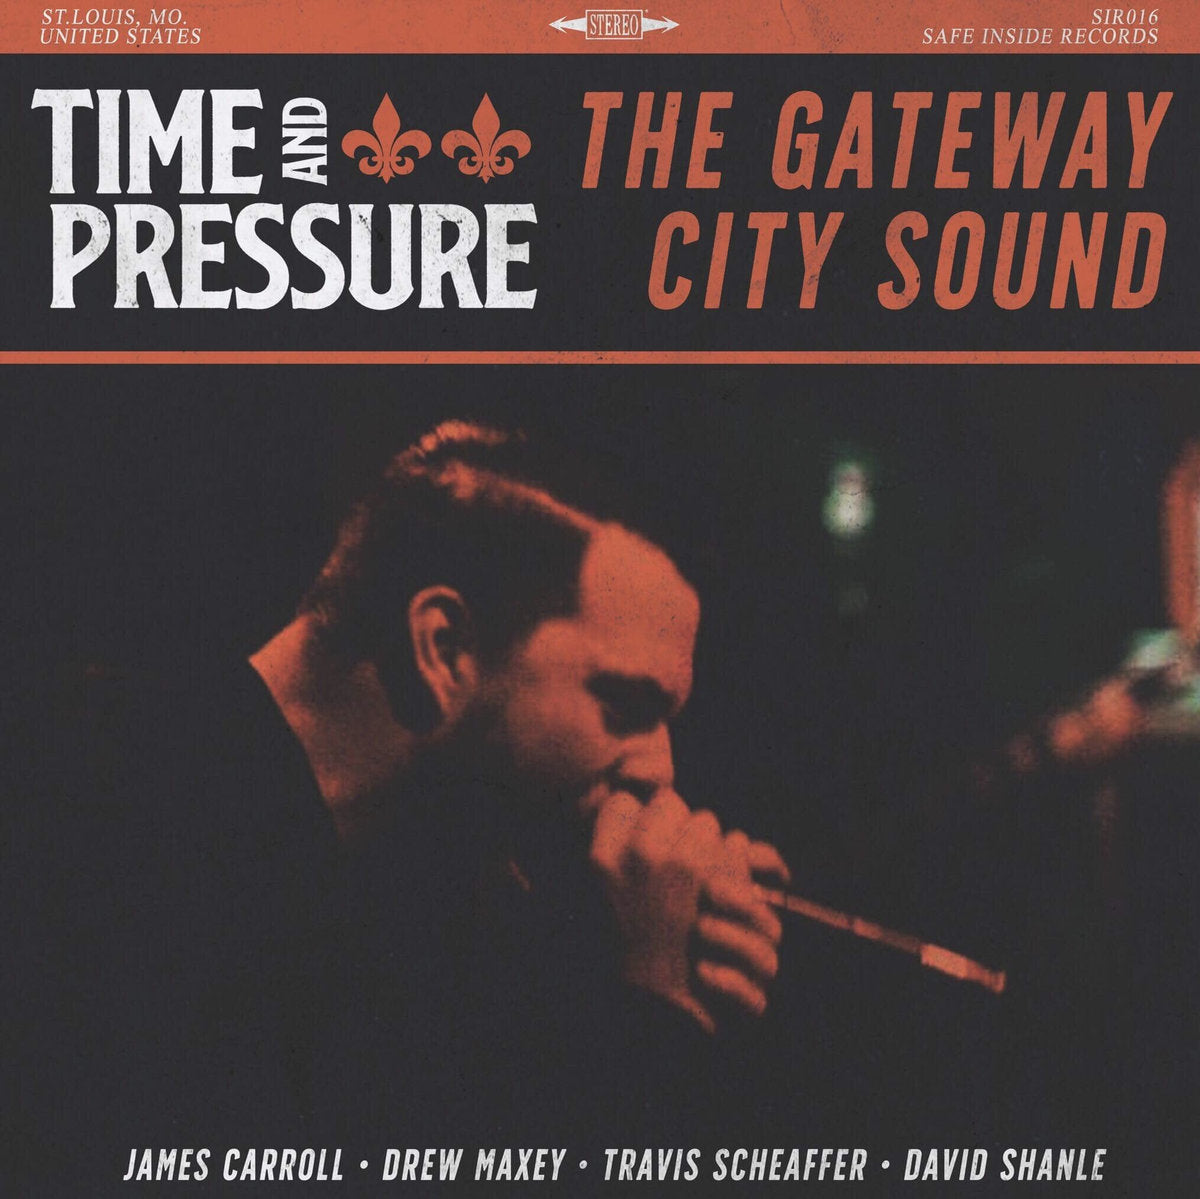 TIME AND PRESSURE 'The Gateway City Sound' LP